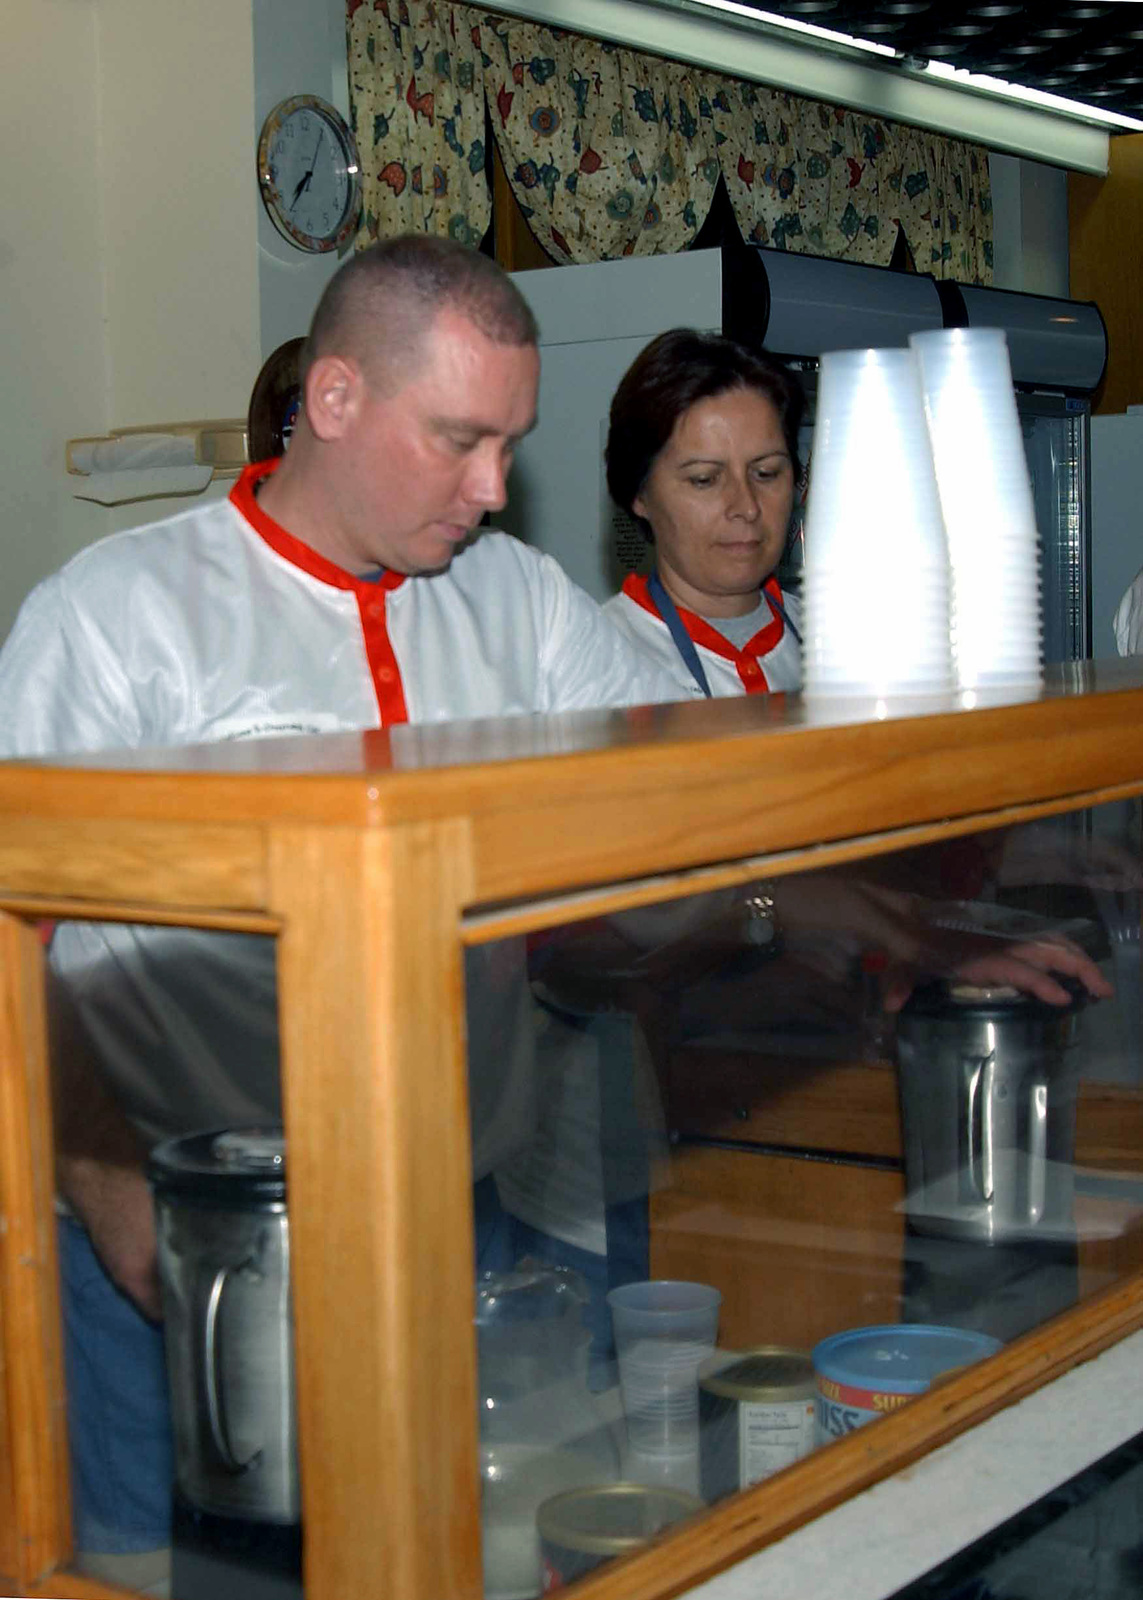 US Air Force (USAF) Technical Sergeant (TSGT) J. R. Foster, (foreground) gives USAF MASTER Sergeant (MSGT) Linda Valinho a lesson in frappacino making inside Crossroads Cafe, at Incirlik Air Base (AB), Turkey. The Crossroads is sponsored by Incirlik AB and deployed Chapels and is staffed completely by volunteers. It provides an alcohol free and smoke-free environment for base personnel and their dependents to meet, talk, play games or just watch television on Friday and Saturday nights